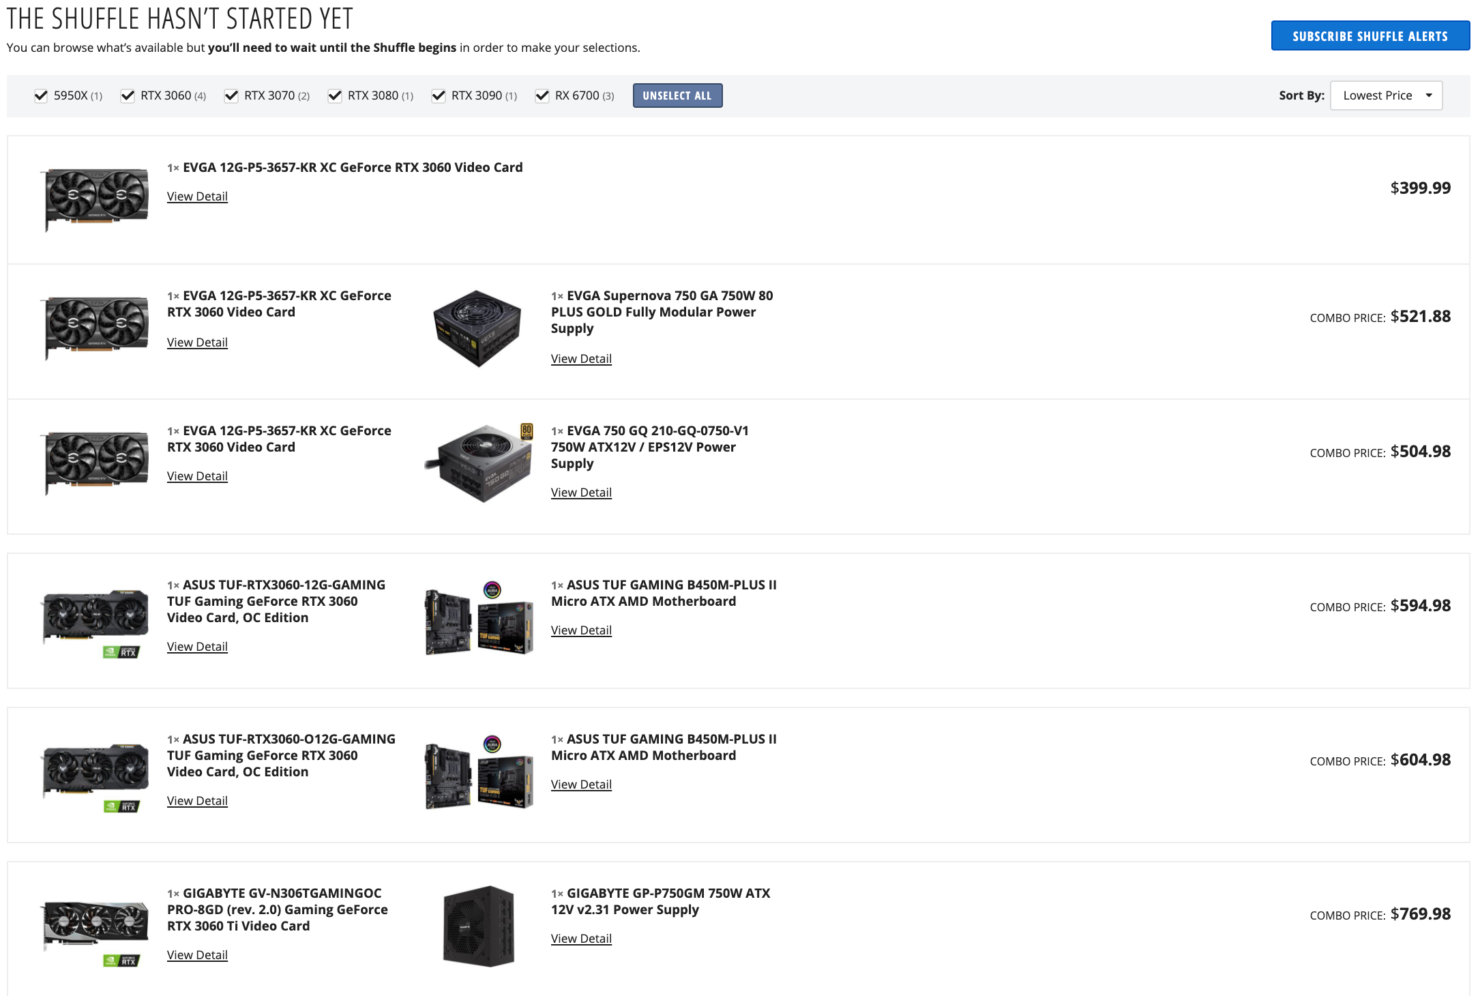 Selection of NVIDIA and AMD graphics cards in the Newegg Shuffle